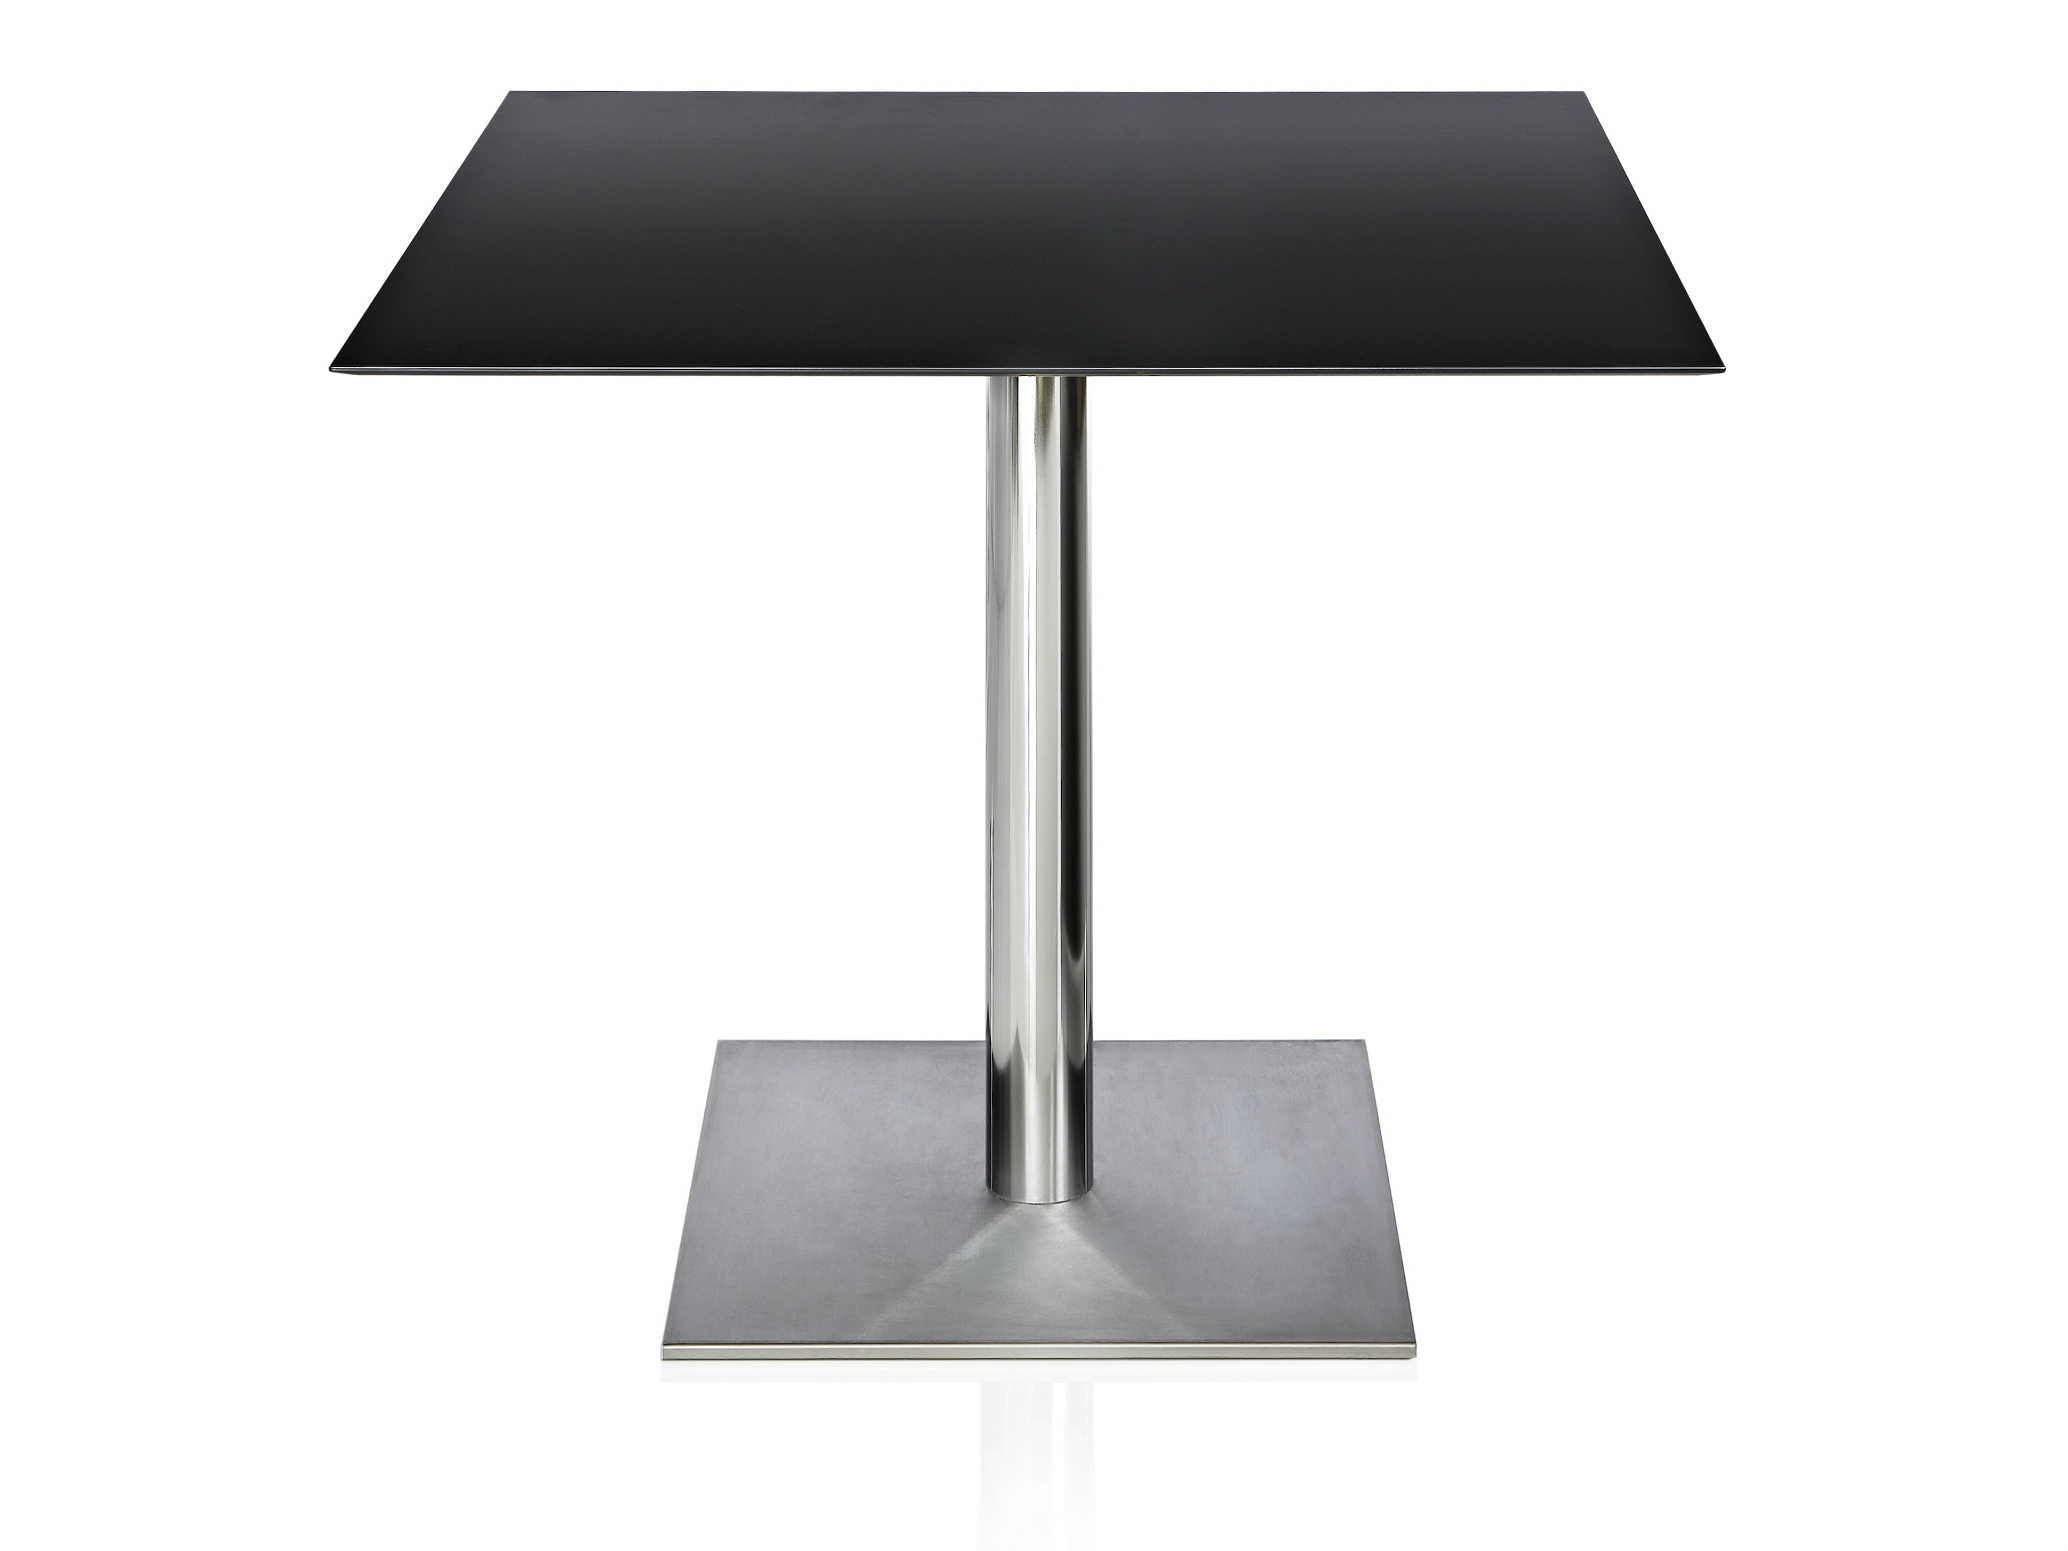 Priscilla square table by alma design design design for Design restaurant table